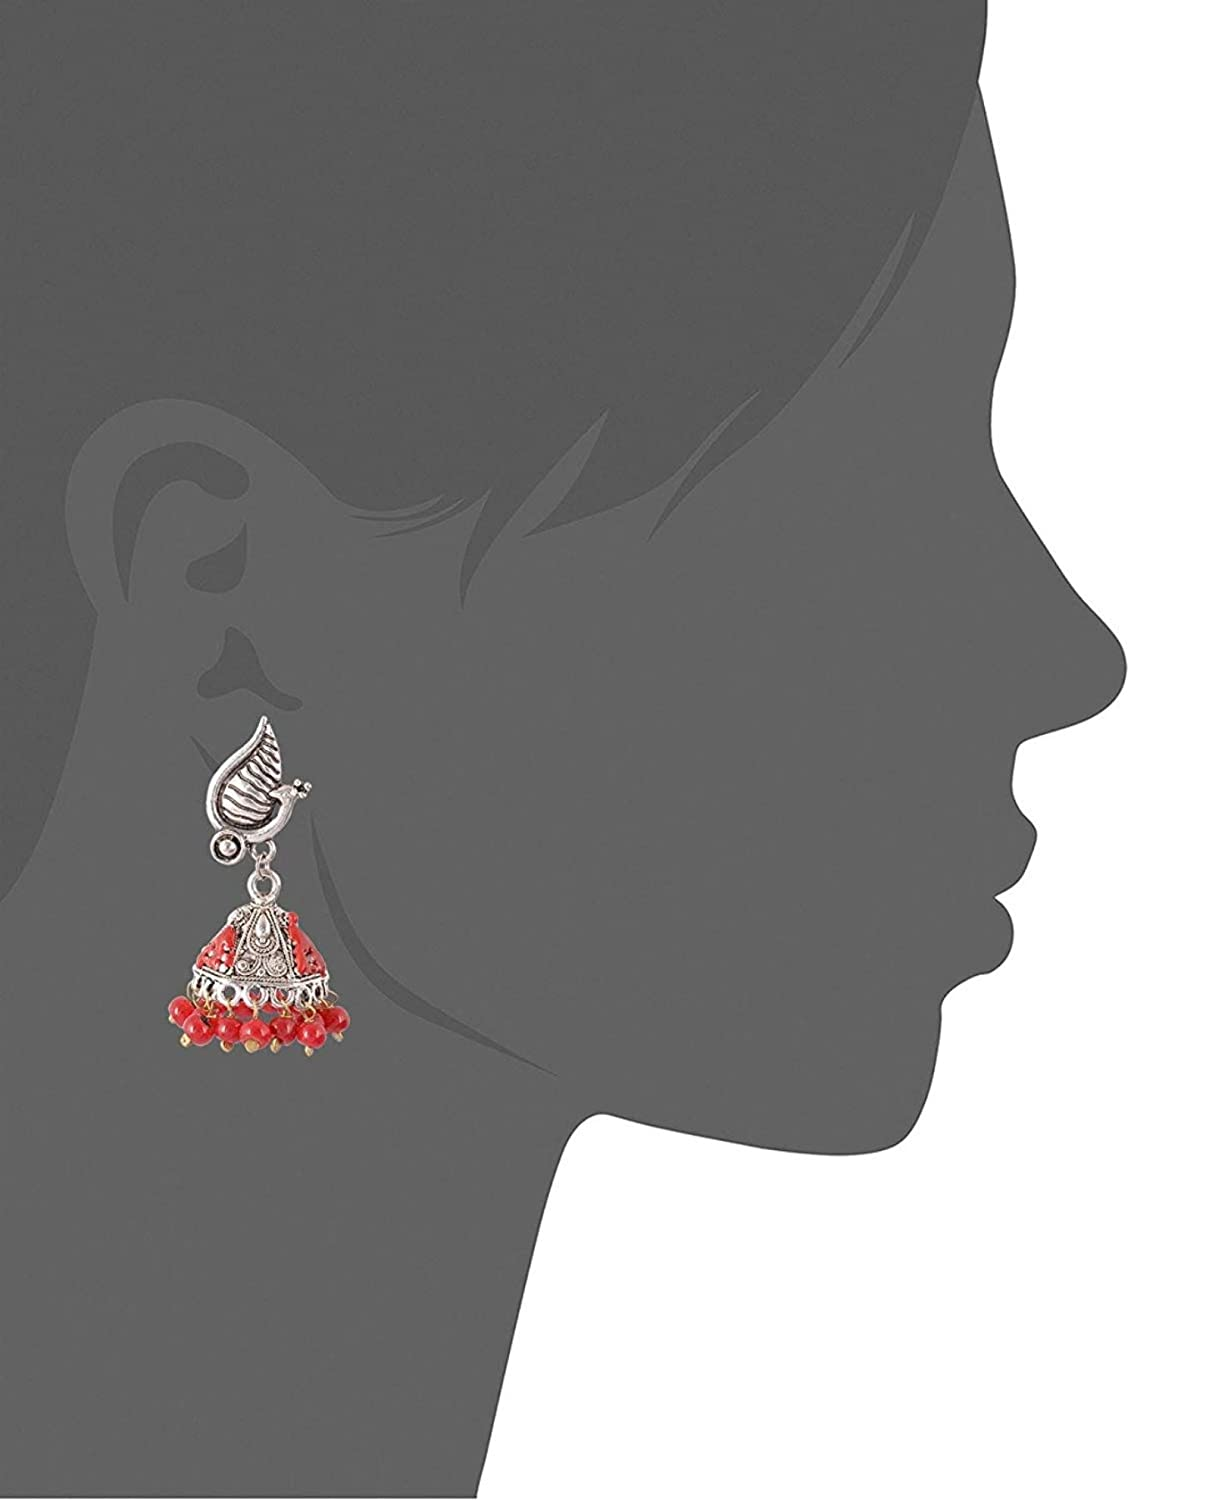 Subharpit Red Pearl Oxidized Silver Metal Non Precious Indian Ethnic Tratitional Tops Jhumki